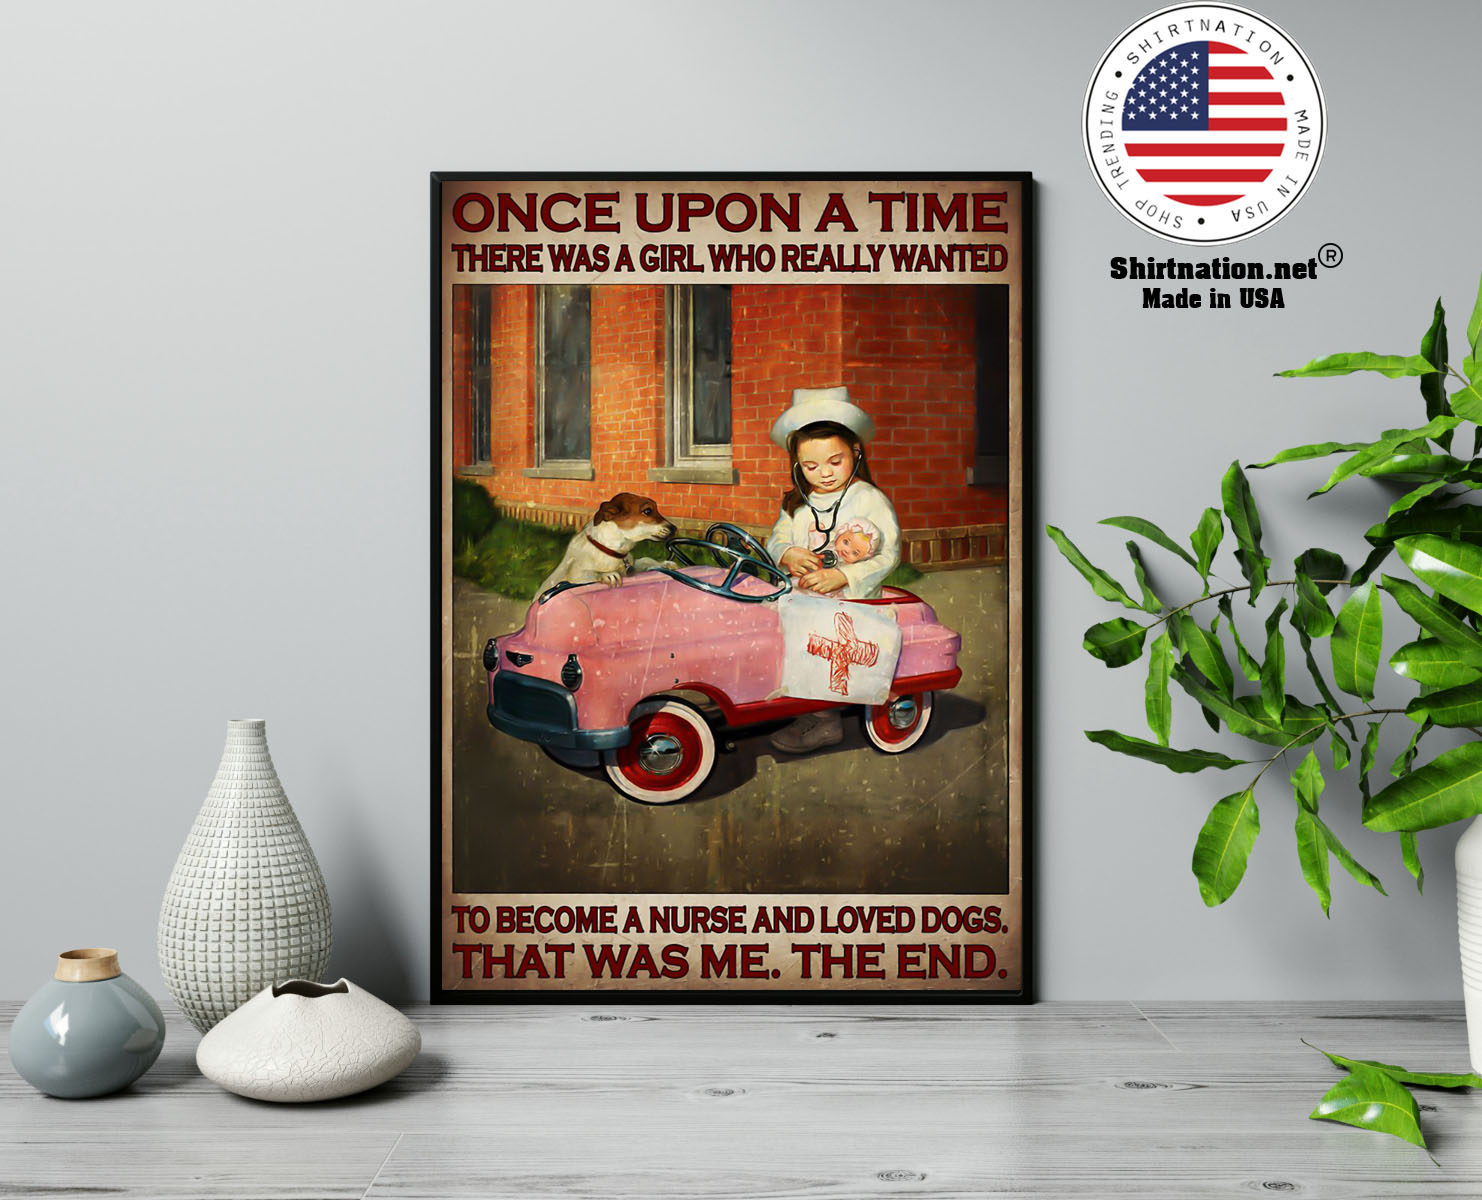 Once upon a time there was a girl who really wanted to become a nurse and loved dogs poster 13